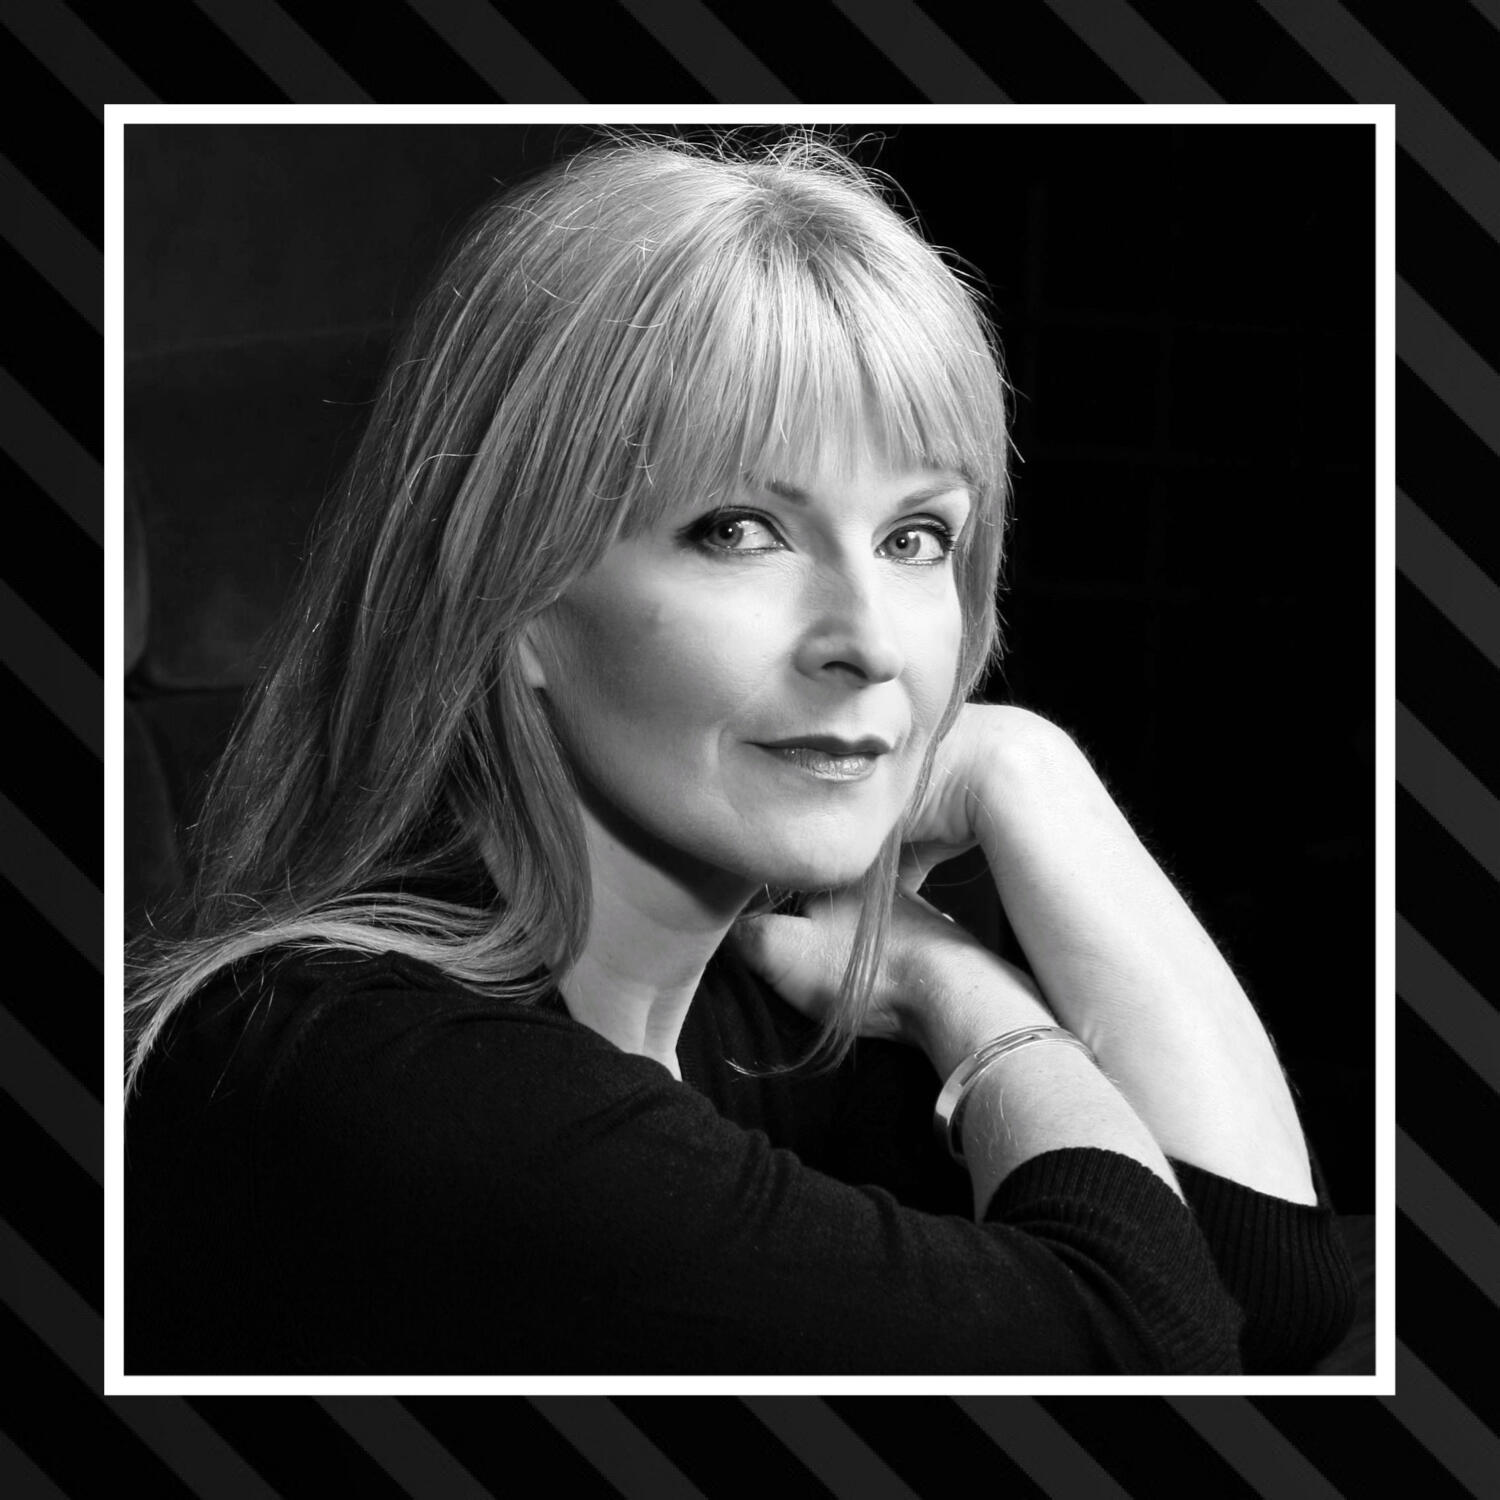 60: The one with Toyah Willcox Image